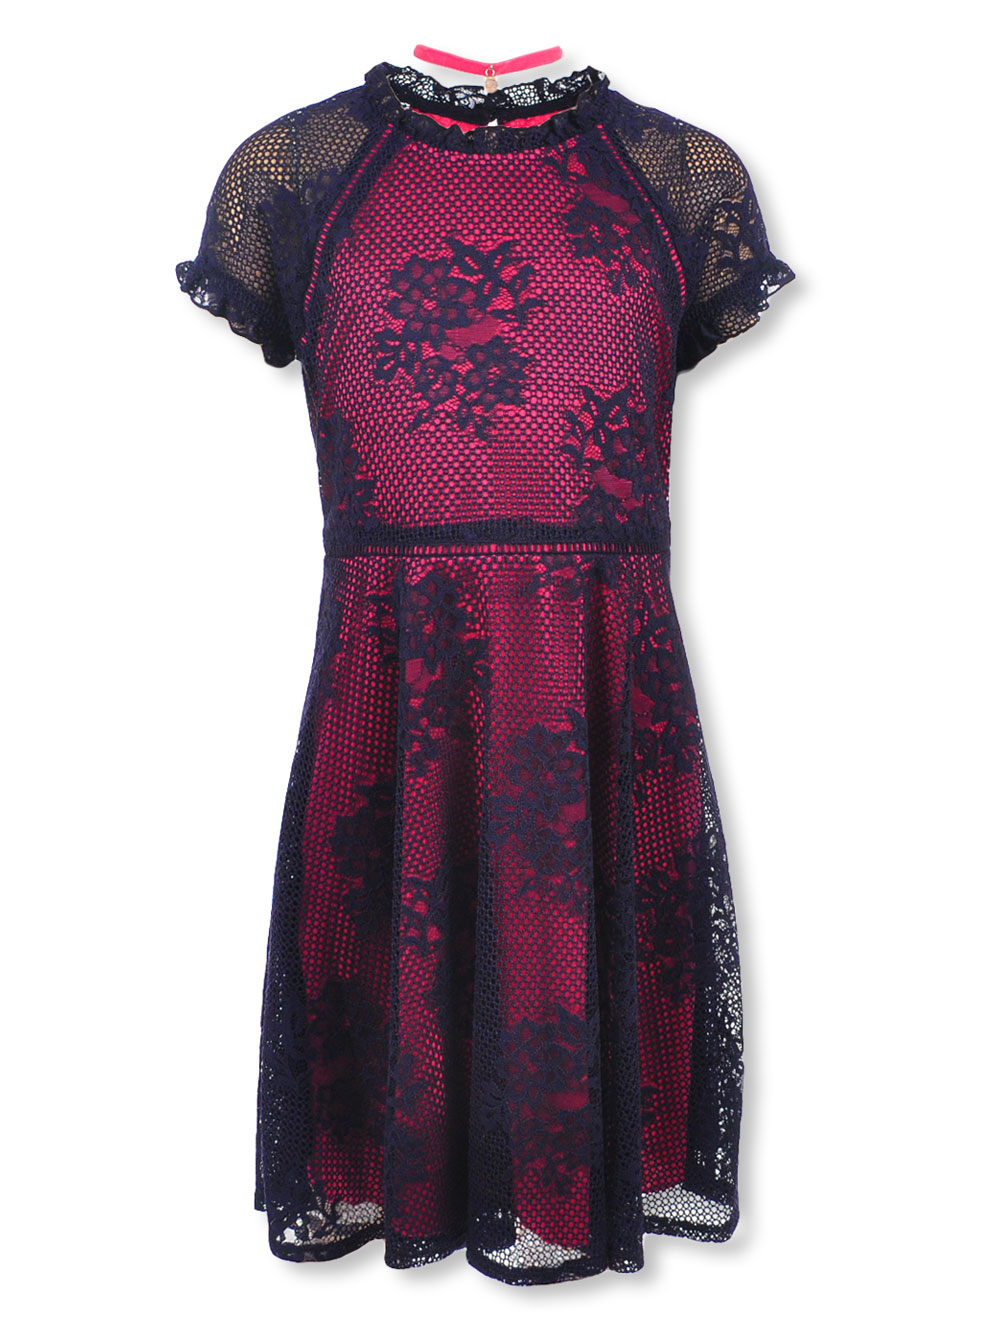 Girls\' Plus Size Dress with Choker by Speechless in Navy/fuchsia